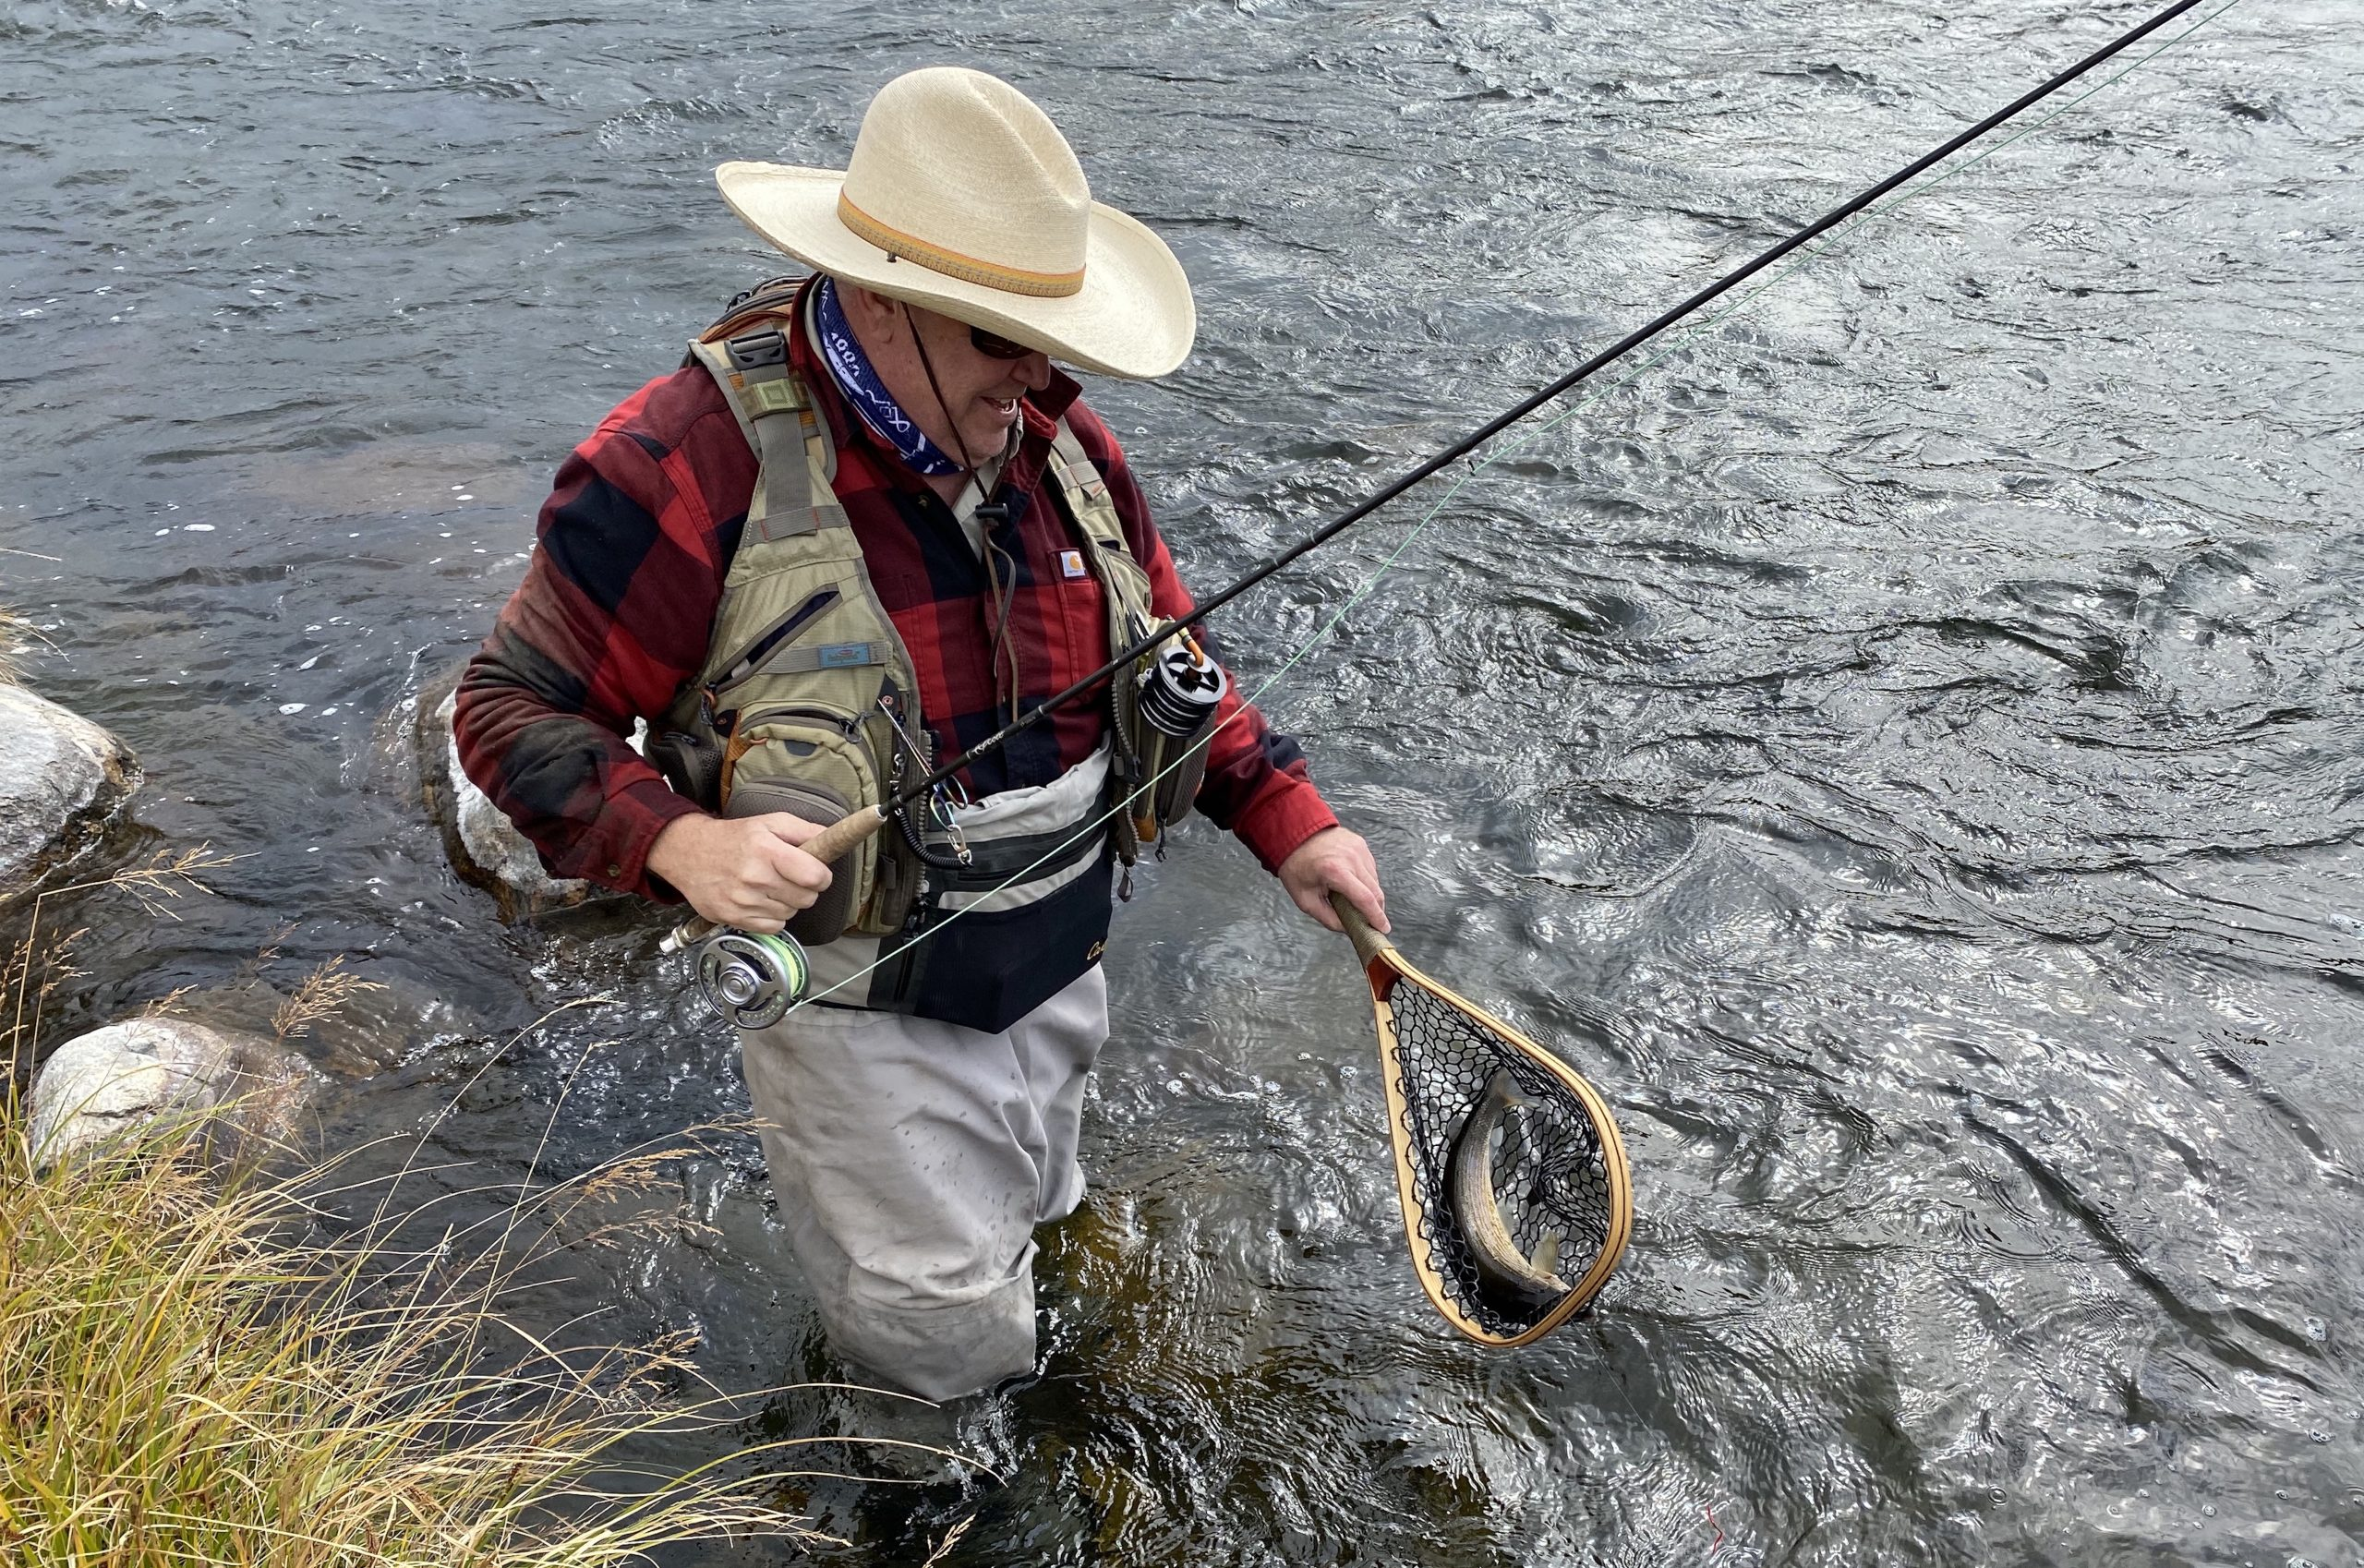 Opinion: Calling all anglers, hunters and the outdoorsy to Sound the alarms on climate change